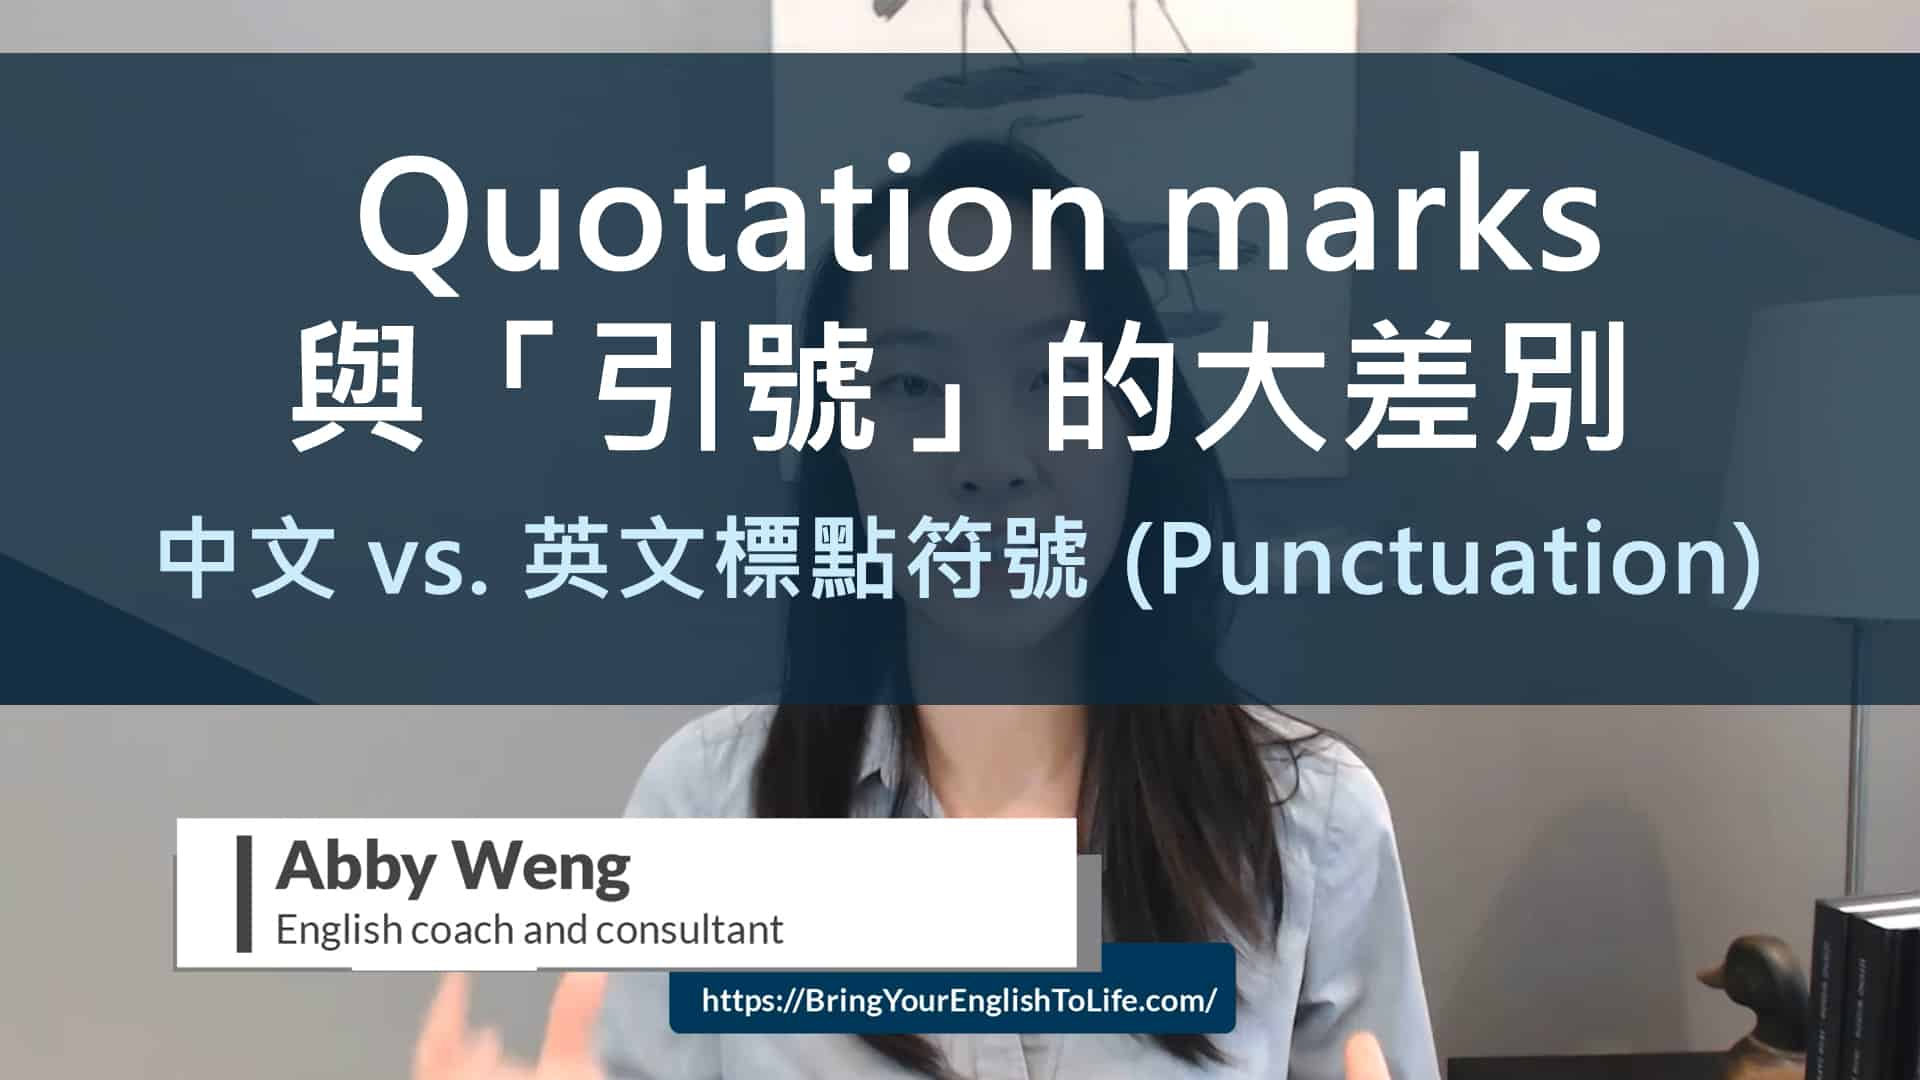 Quotation marks 與引號的大差別 | 中文 vs. 英文標點符號 (Punctuation) - 活化英文 Bring Your English to Life